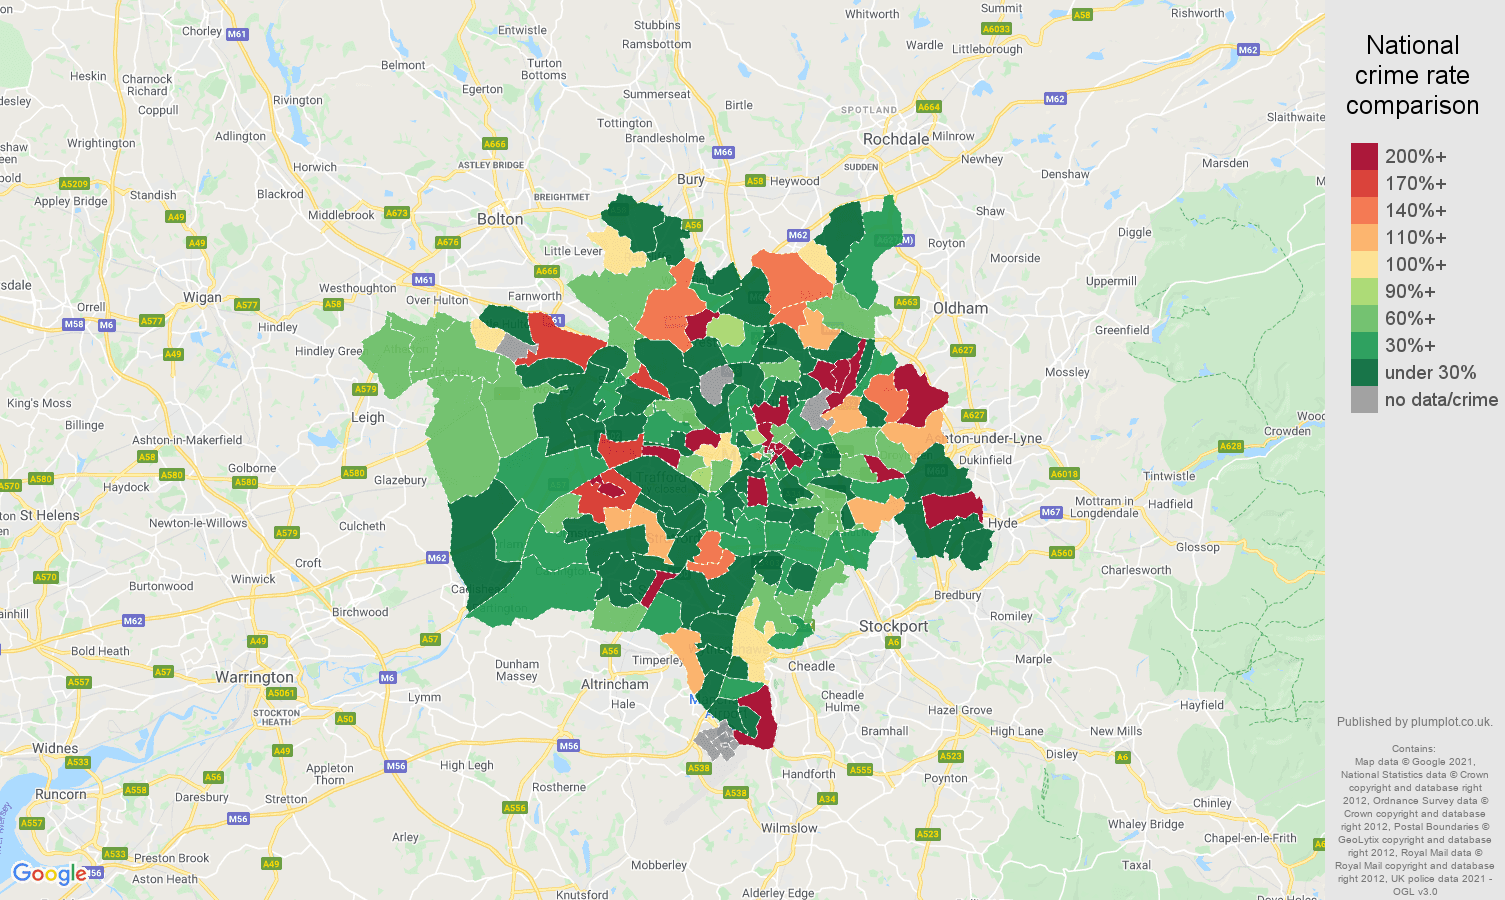 Manchester shoplifting crime rate comparison map